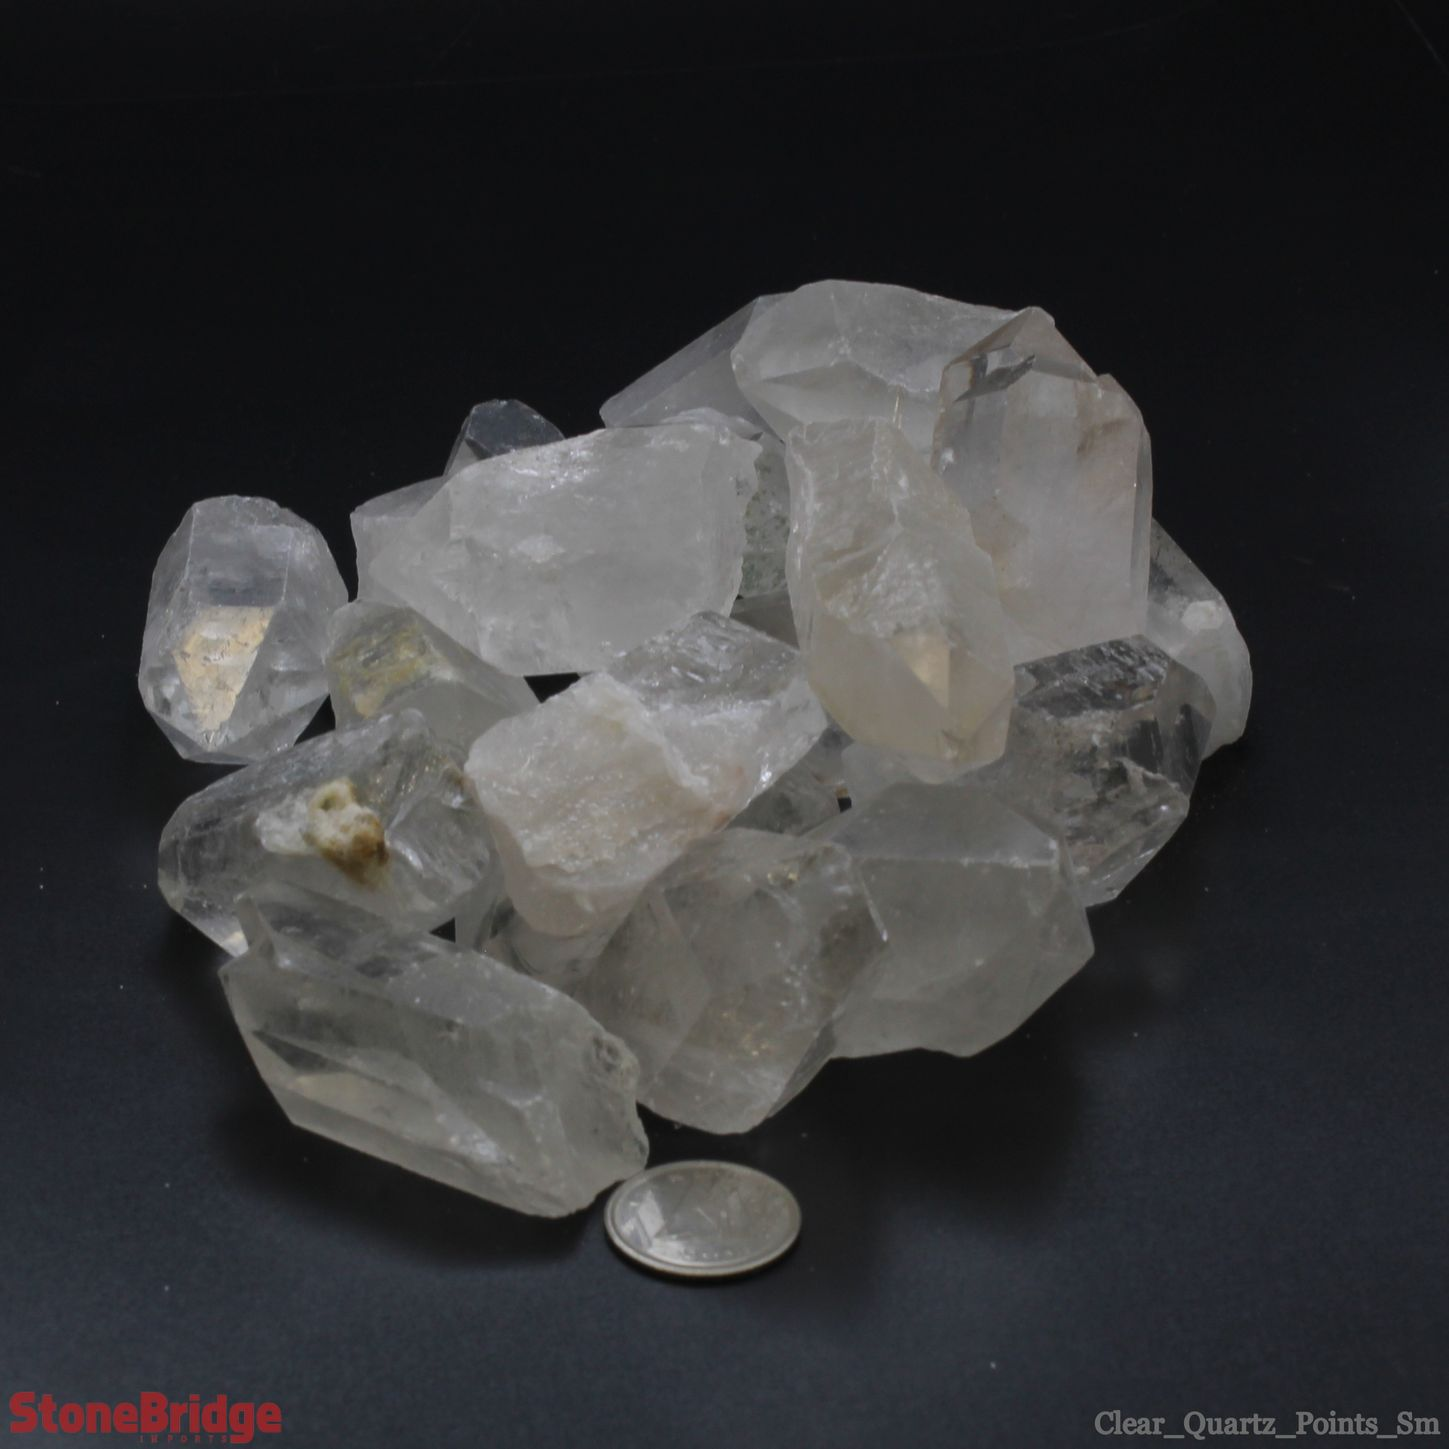 POCRSbagSM_Clear_Quartz_Points_Sm_3.jpg